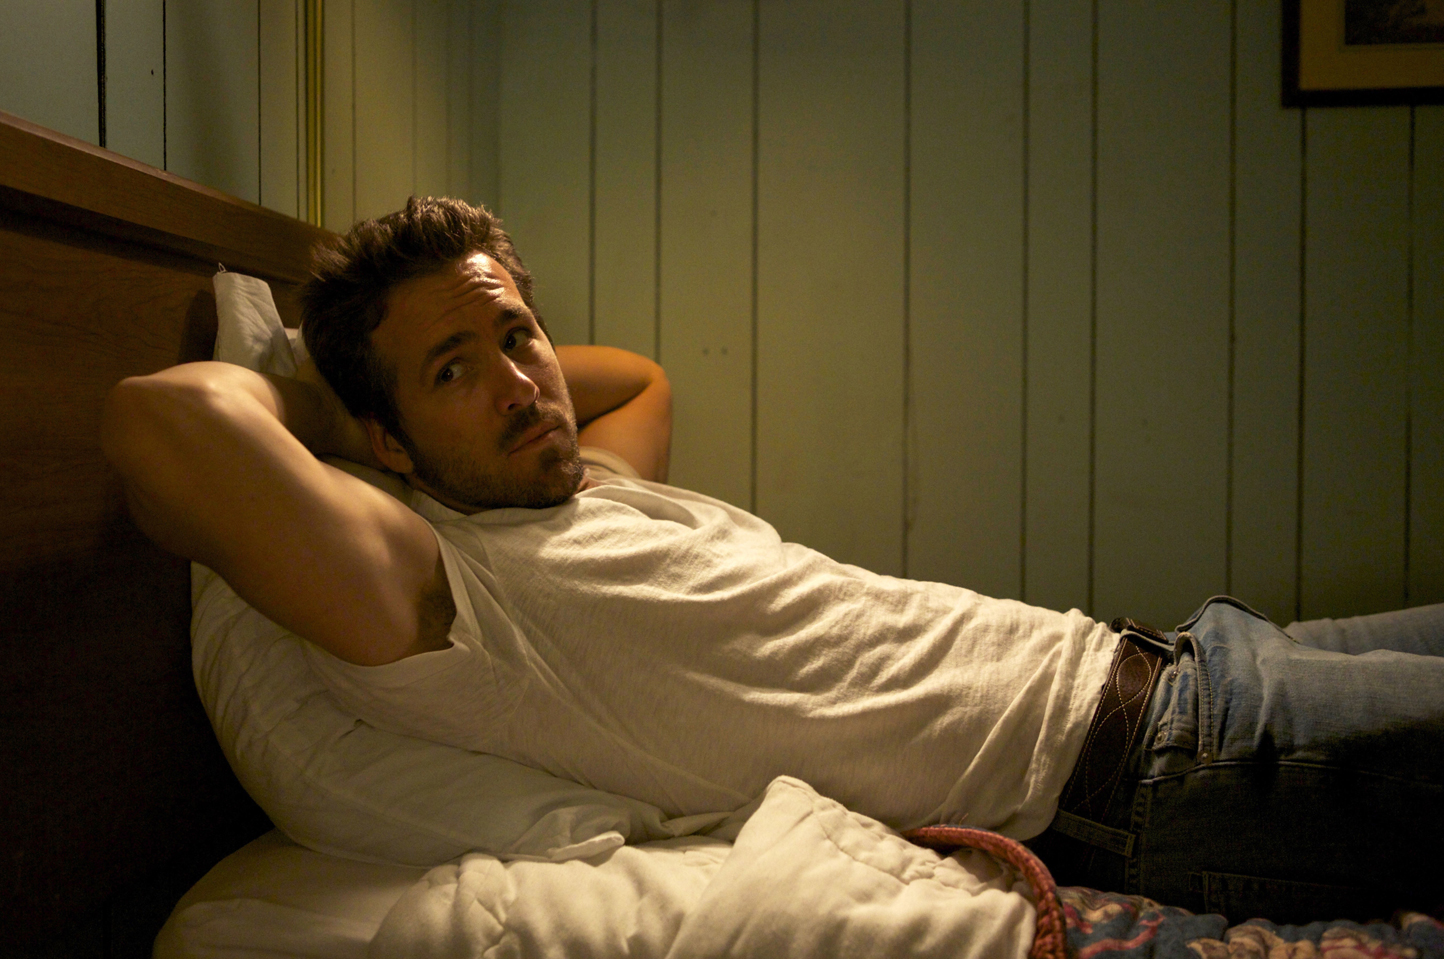 MISSISSIPPI GRIND, Ryan Reynolds, 2015. ph: Patti Perret/©A24/Courtesy Everett Collection